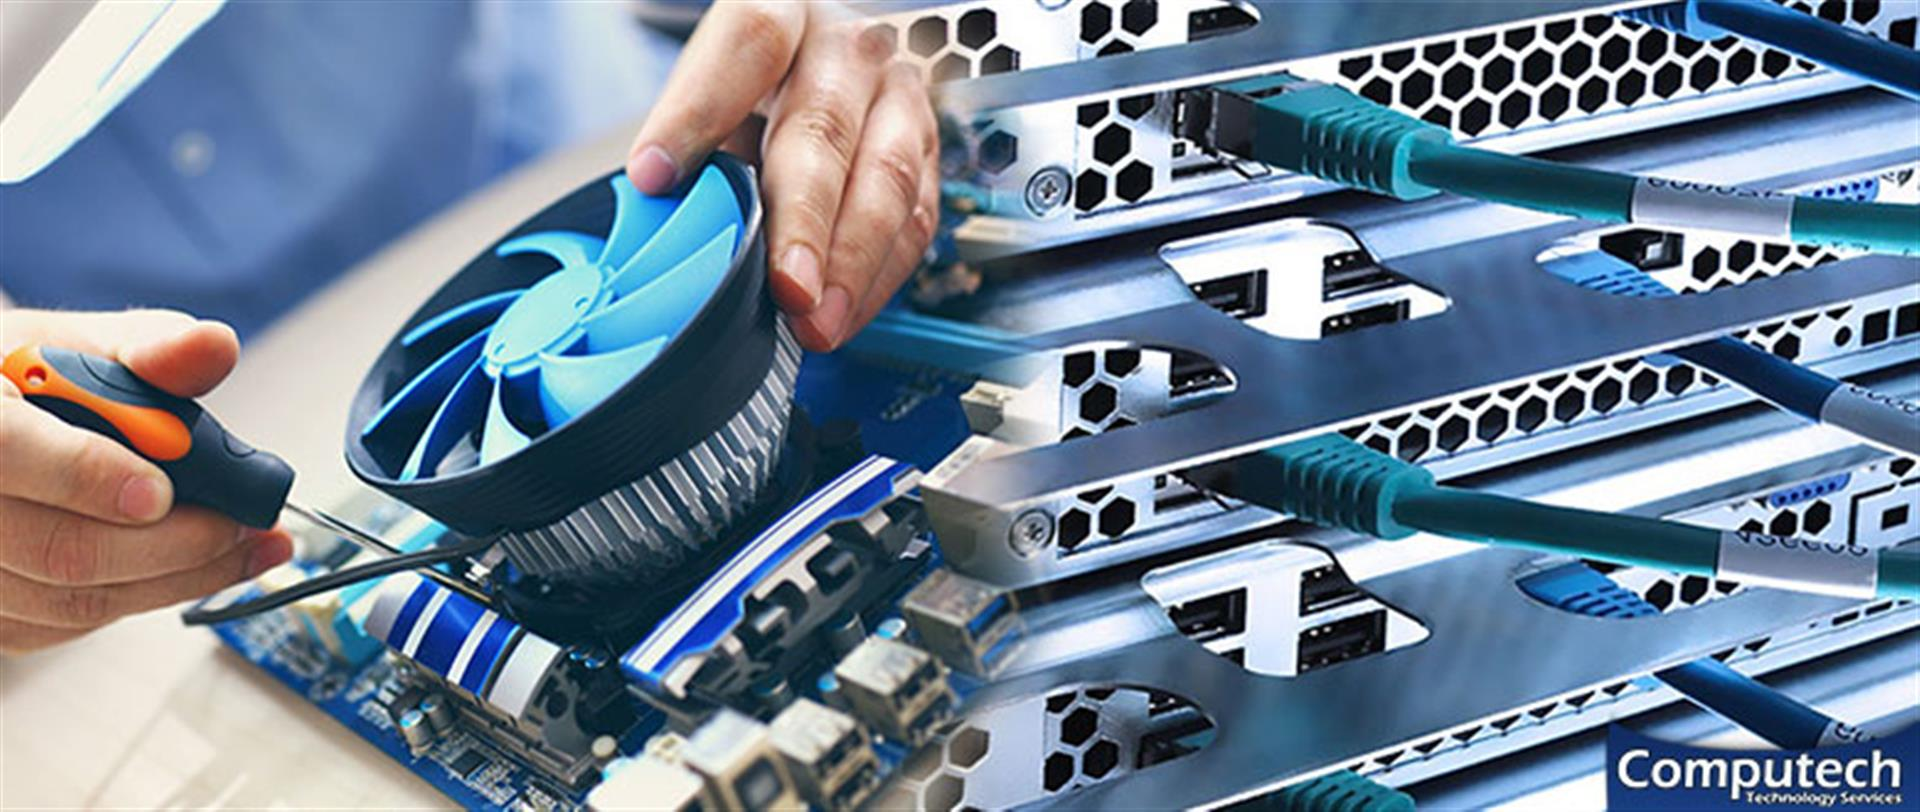 Dacula Georgia Onsite Computer & Printer Repair, Network, Voice & Data Cabling Solutions